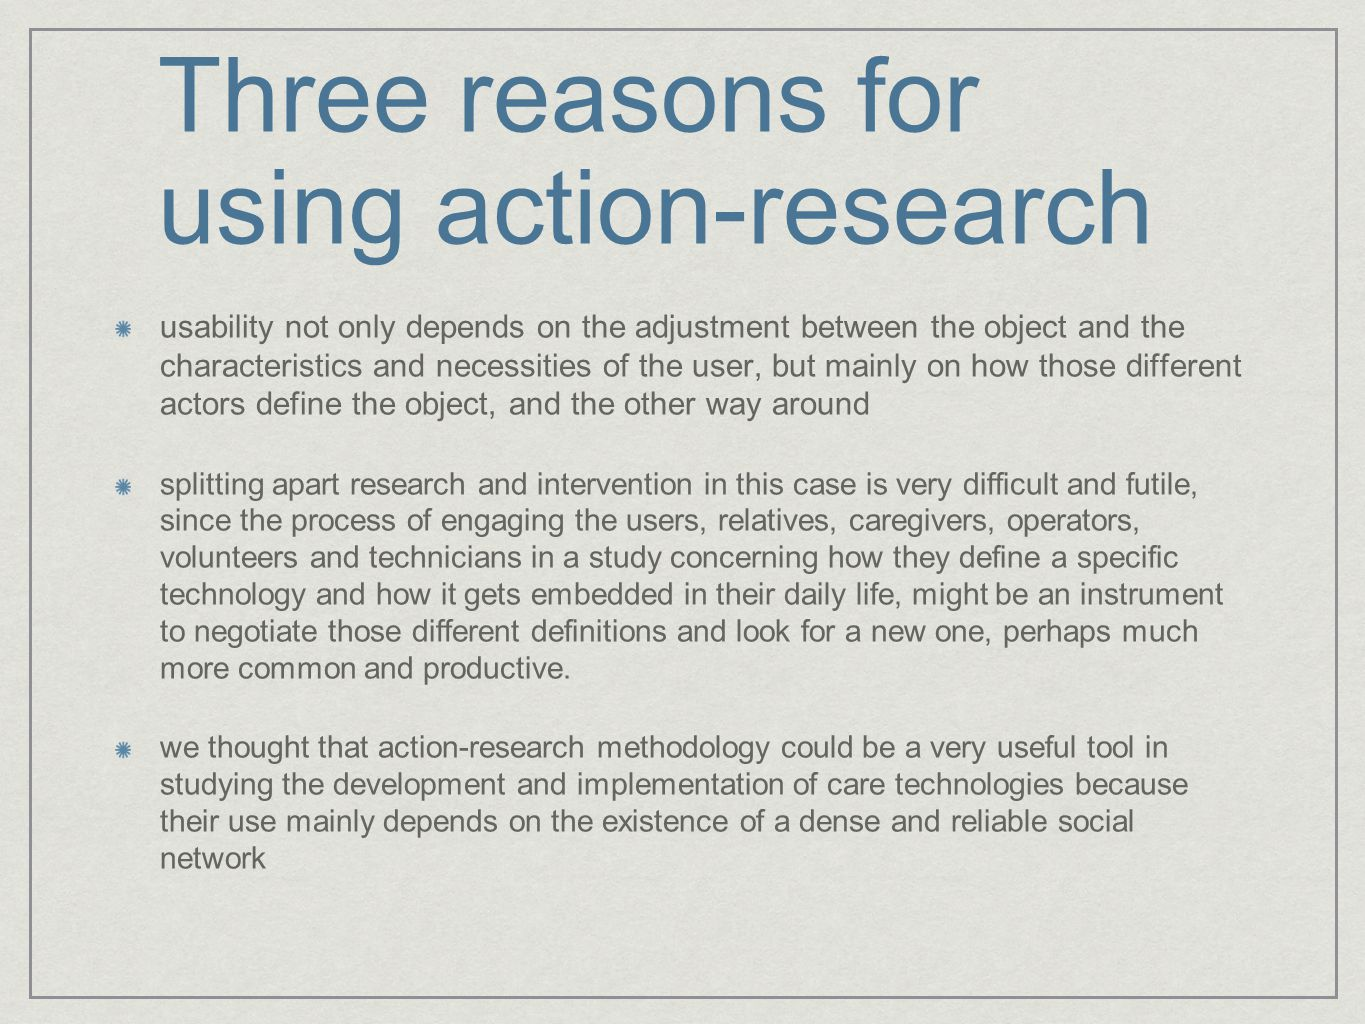 Three reasons for using action-research usability not only depends on the adjustment between the object and the characteristics and necessities of the user, but mainly on how those different actors define the object, and the other way around splitting apart research and intervention in this case is very difficult and futile, since the process of engaging the users, relatives, caregivers, operators, volunteers and technicians in a study concerning how they define a specific technology and how it gets embedded in their daily life, might be an instrument to negotiate those different definitions and look for a new one, perhaps much more common and productive.